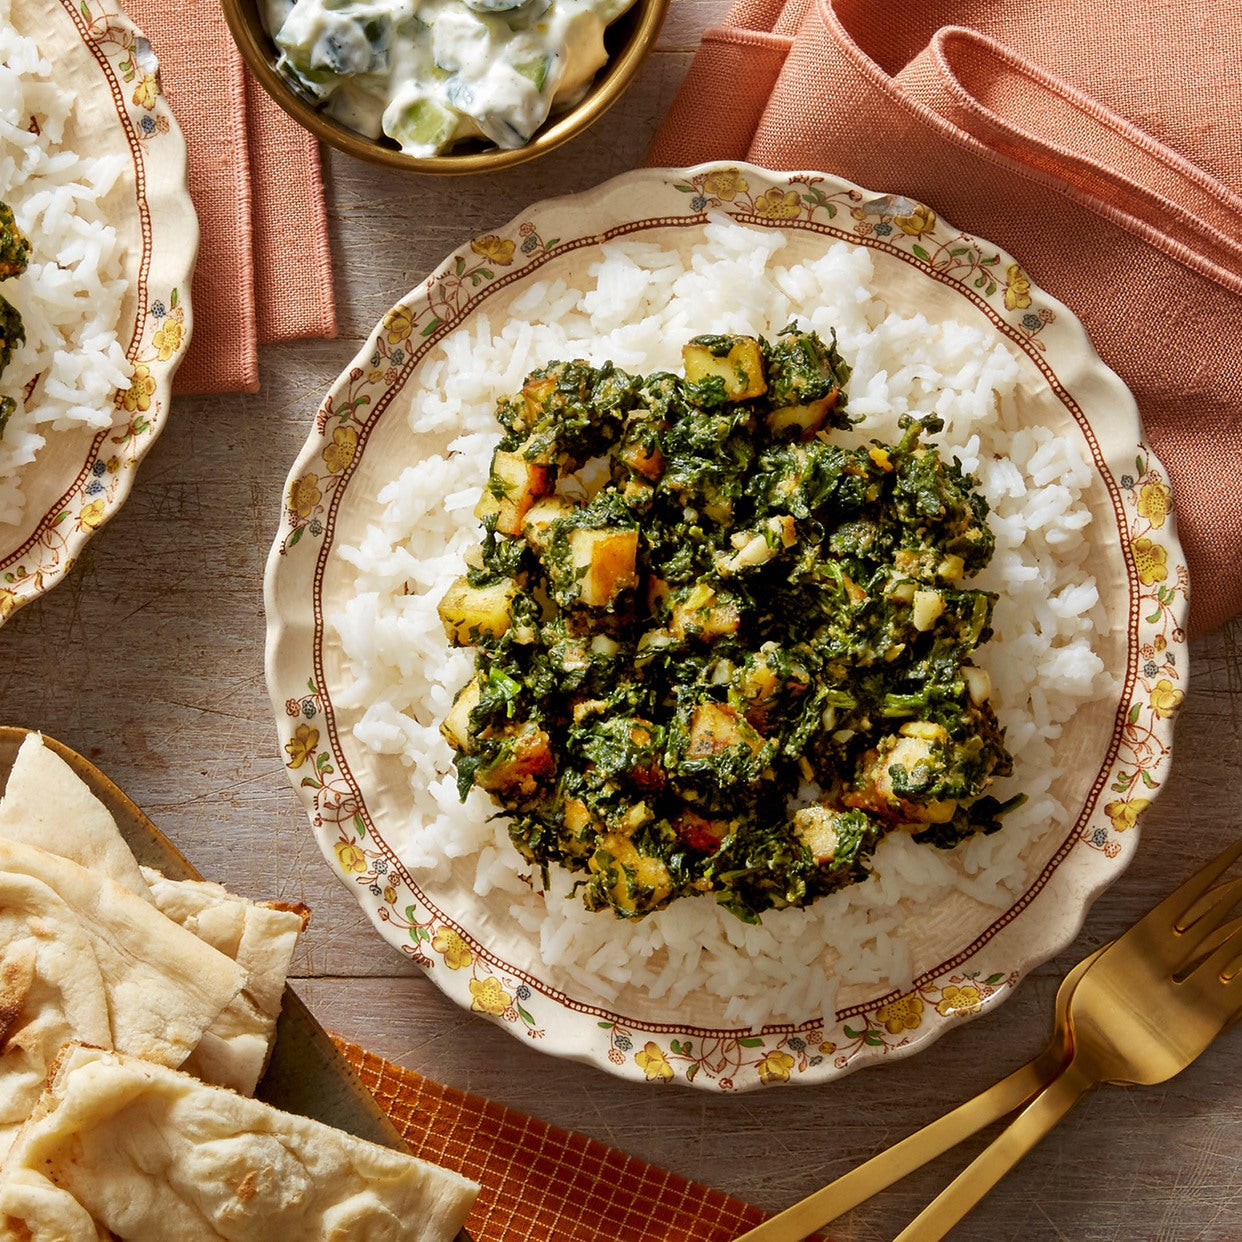 Saag Paneer with Basmati Rice, Naan & Cucumber-Yogurt Sauce